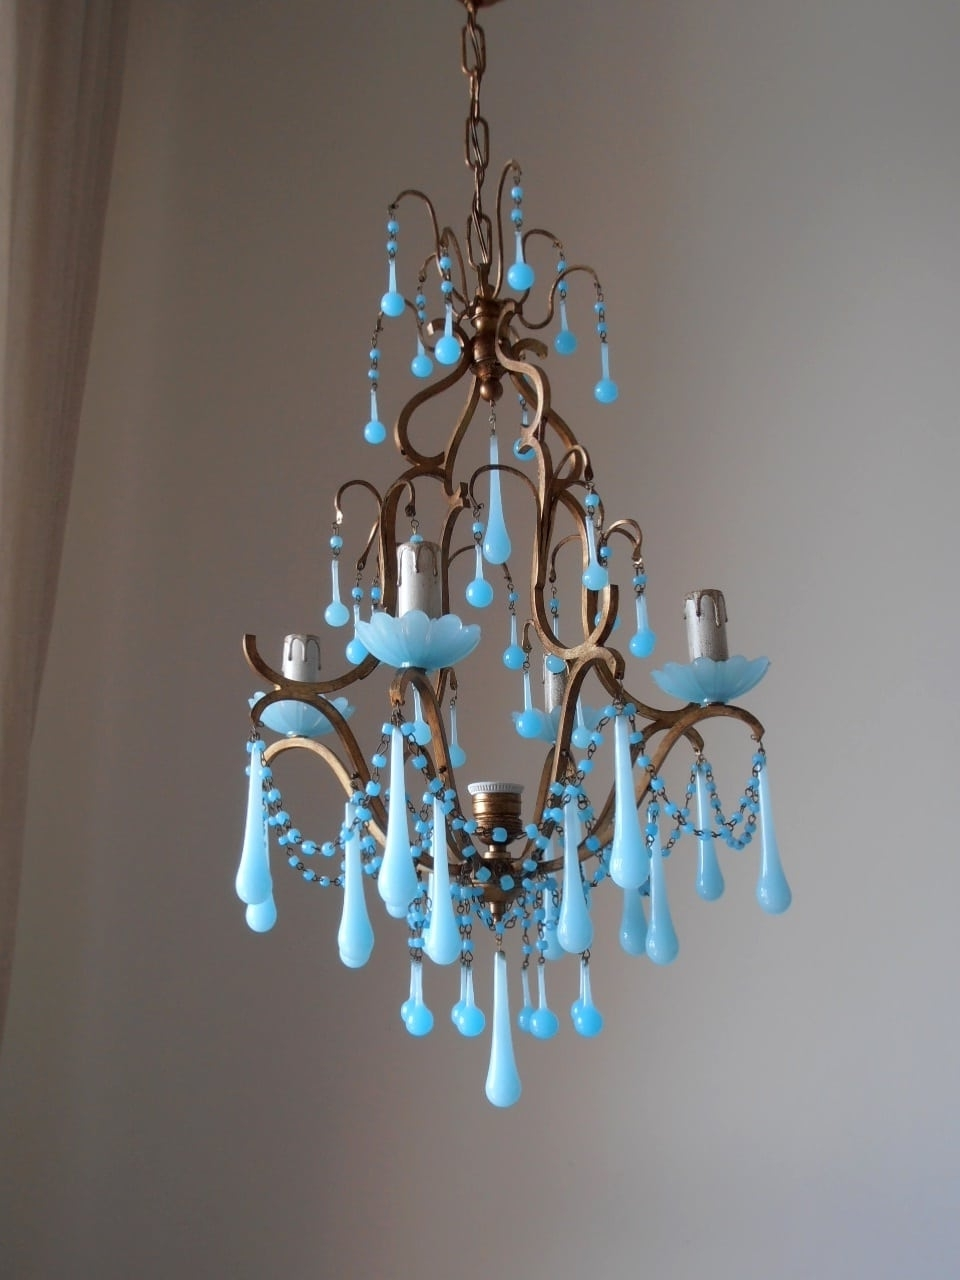 Widely Used Italian Birdcage Chandelier With Blue Murano Opaline – Lorella Dia For Turquoise Birdcage Chandeliers (View 20 of 20)